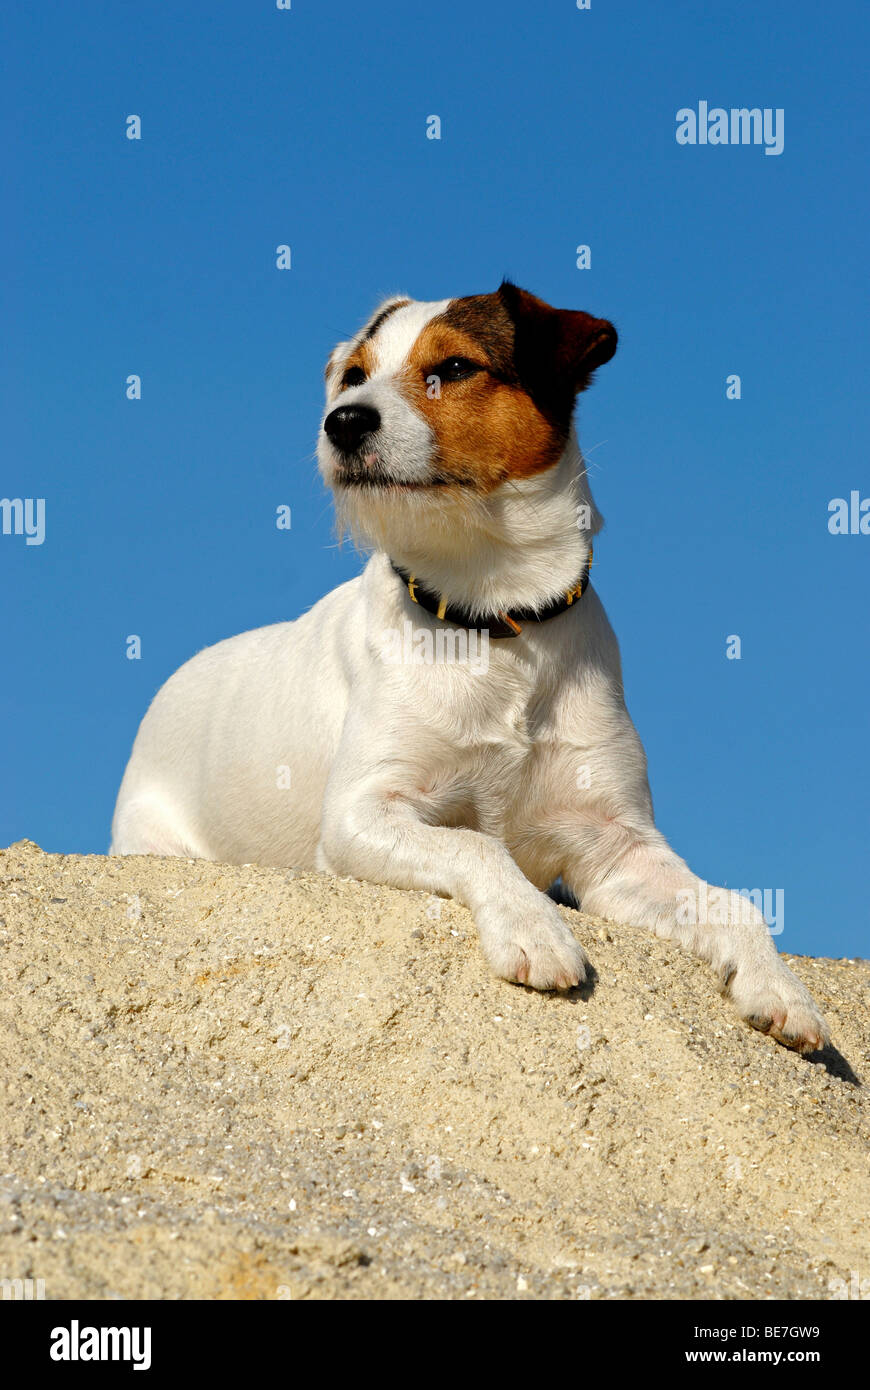 Jack Russell Laying Down Stock Photos & Jack Russell Laying Down ...